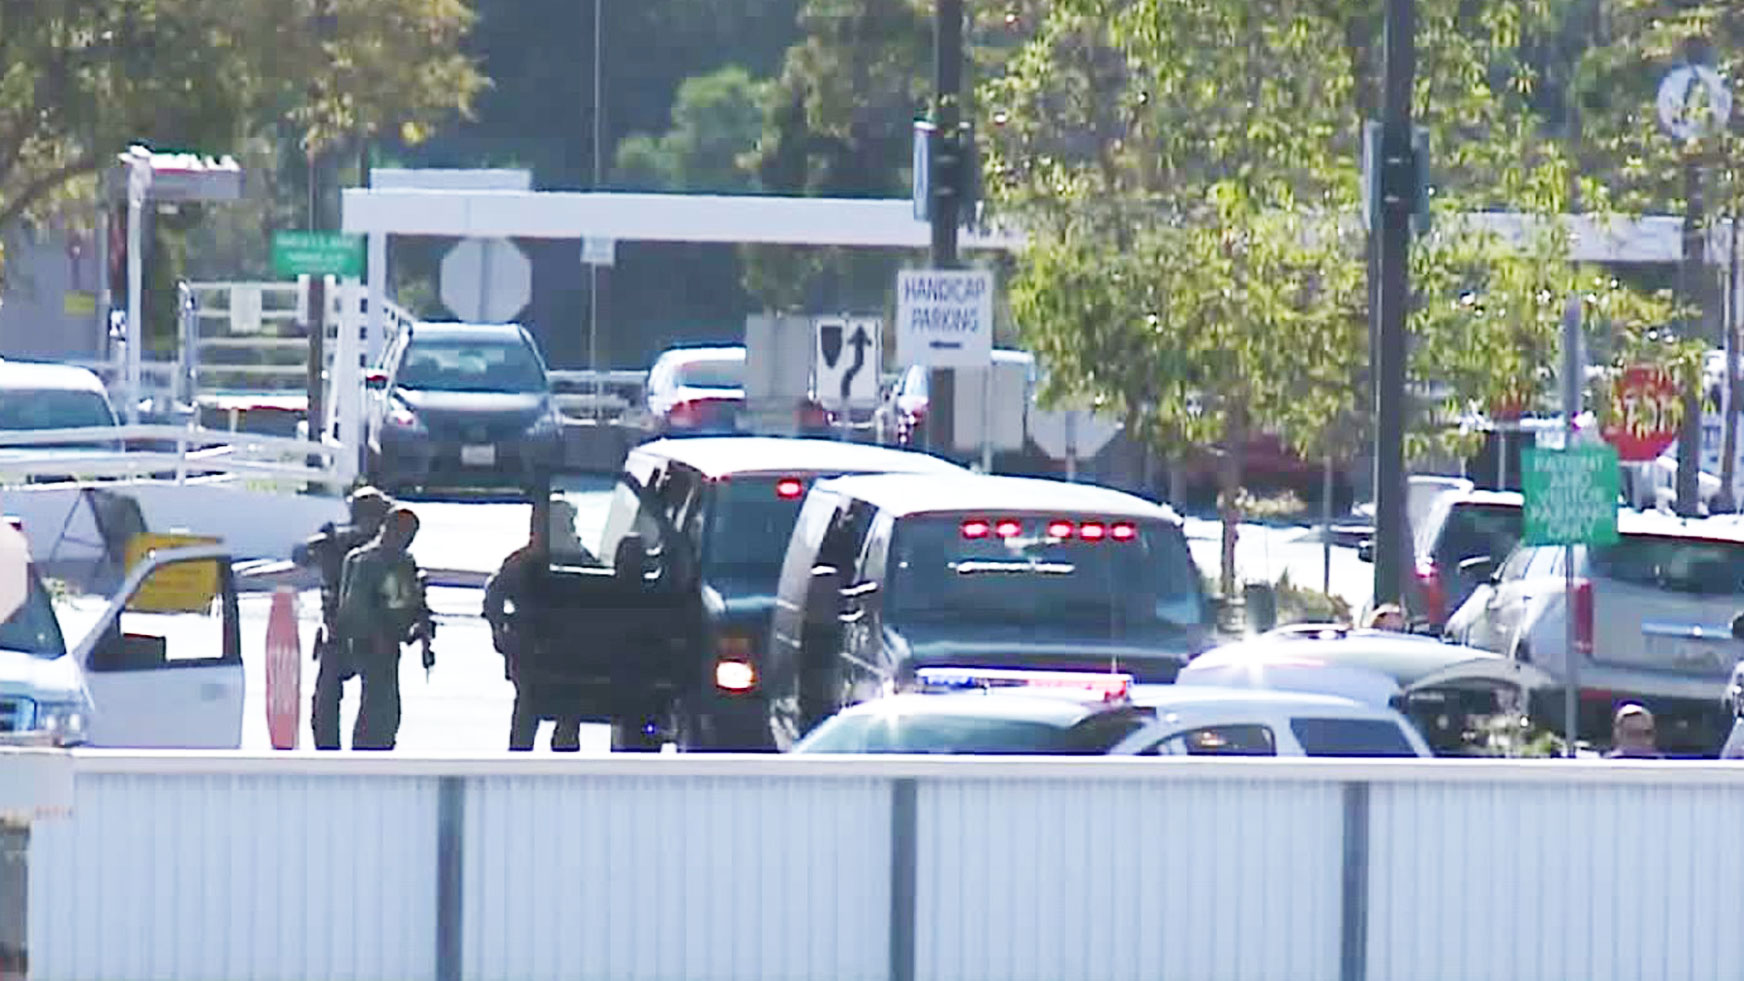 Armed Man Reported at Naval Medical Center San Diego